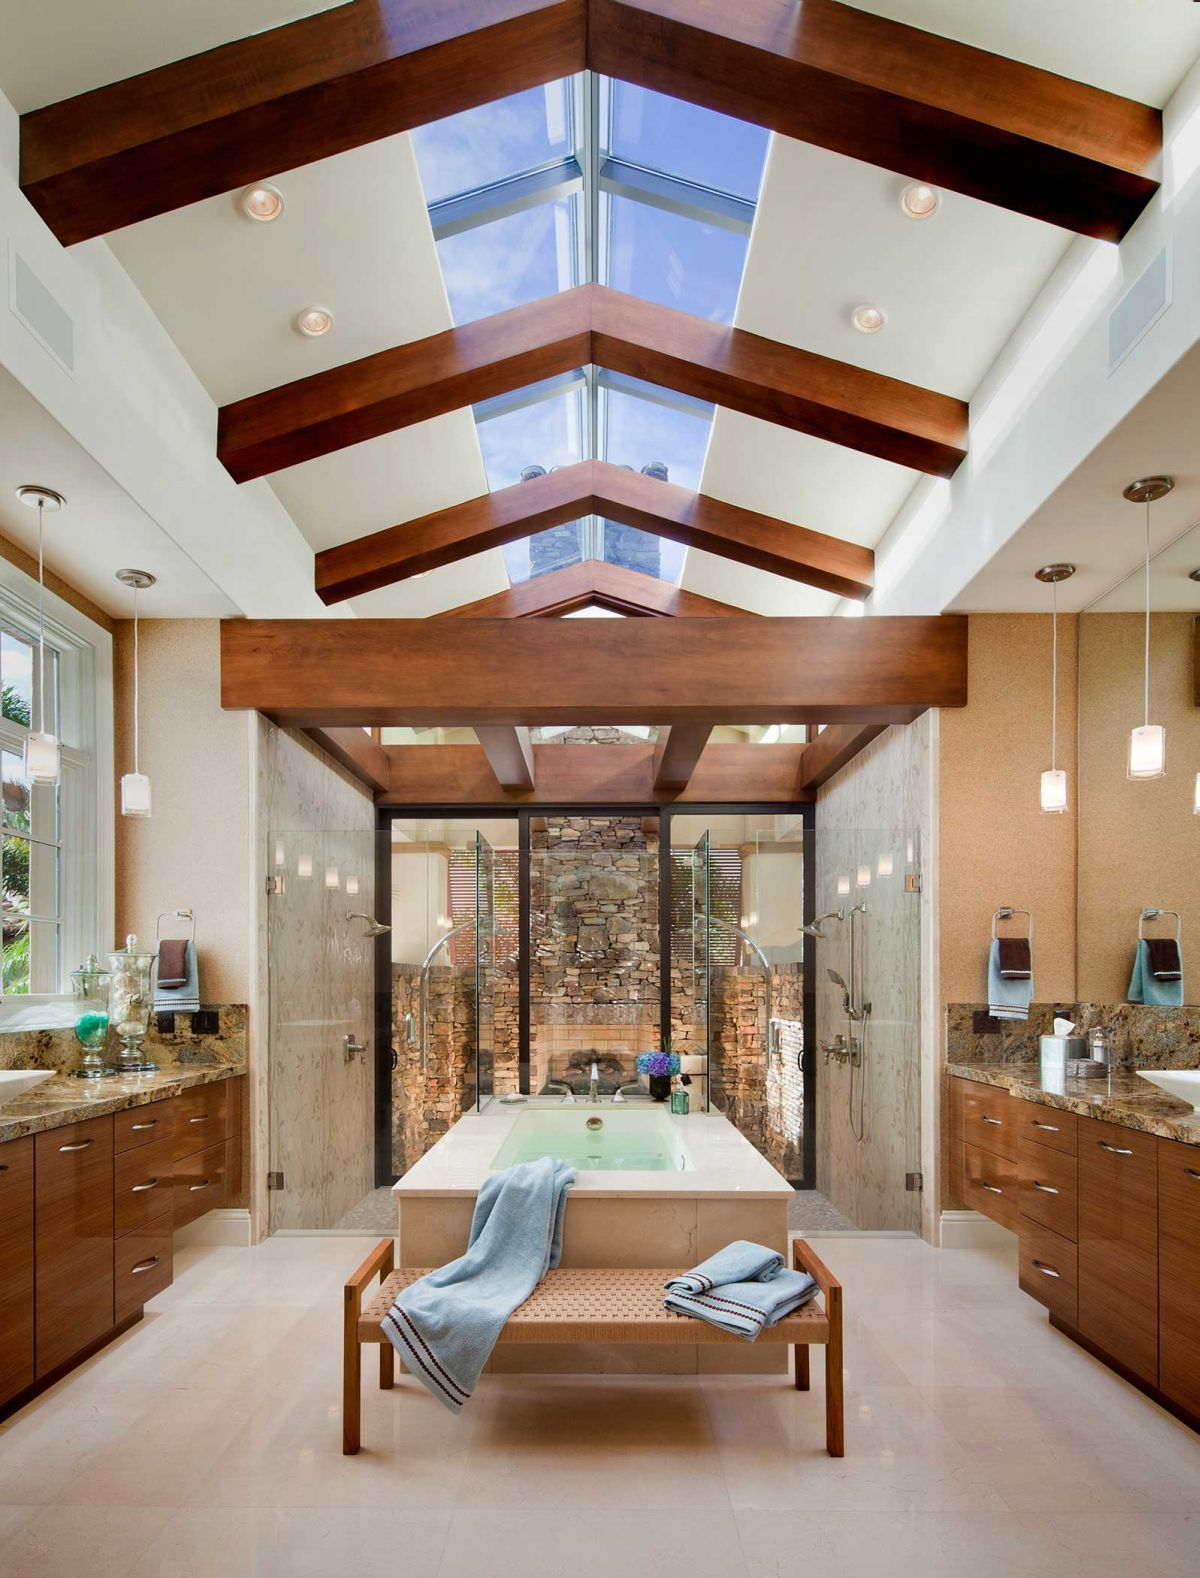 Master Bathroom With Vaulted Ceiling And Skylight Home - Contemporary bathrooms vaulted ceiling